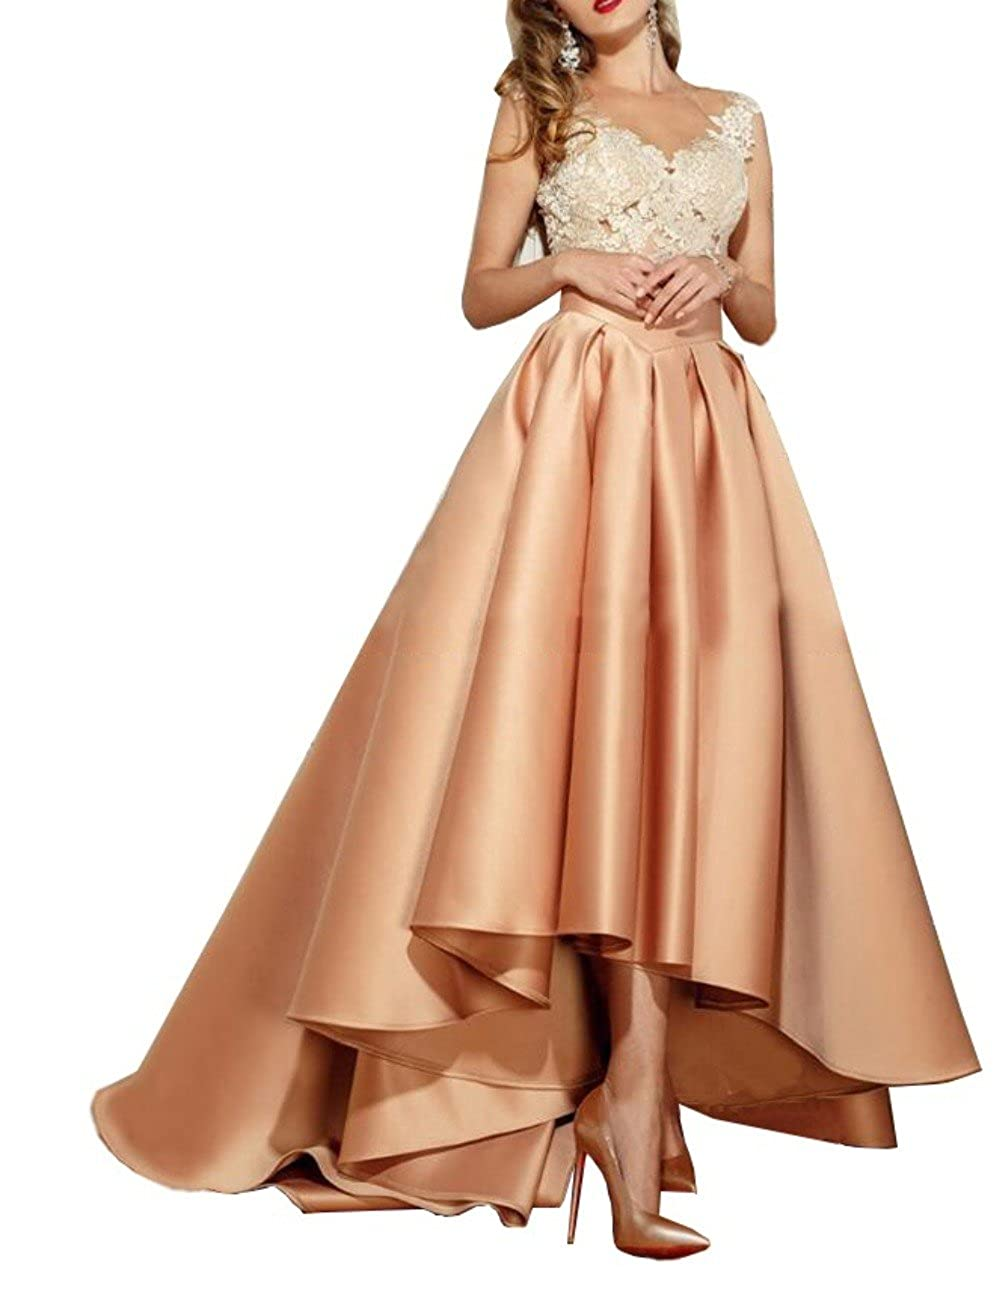 Champagne MariRobe Women's Lace Appliques Hilo Prom Gown Beaded Formal Dresses Illusion Back Prom Dress